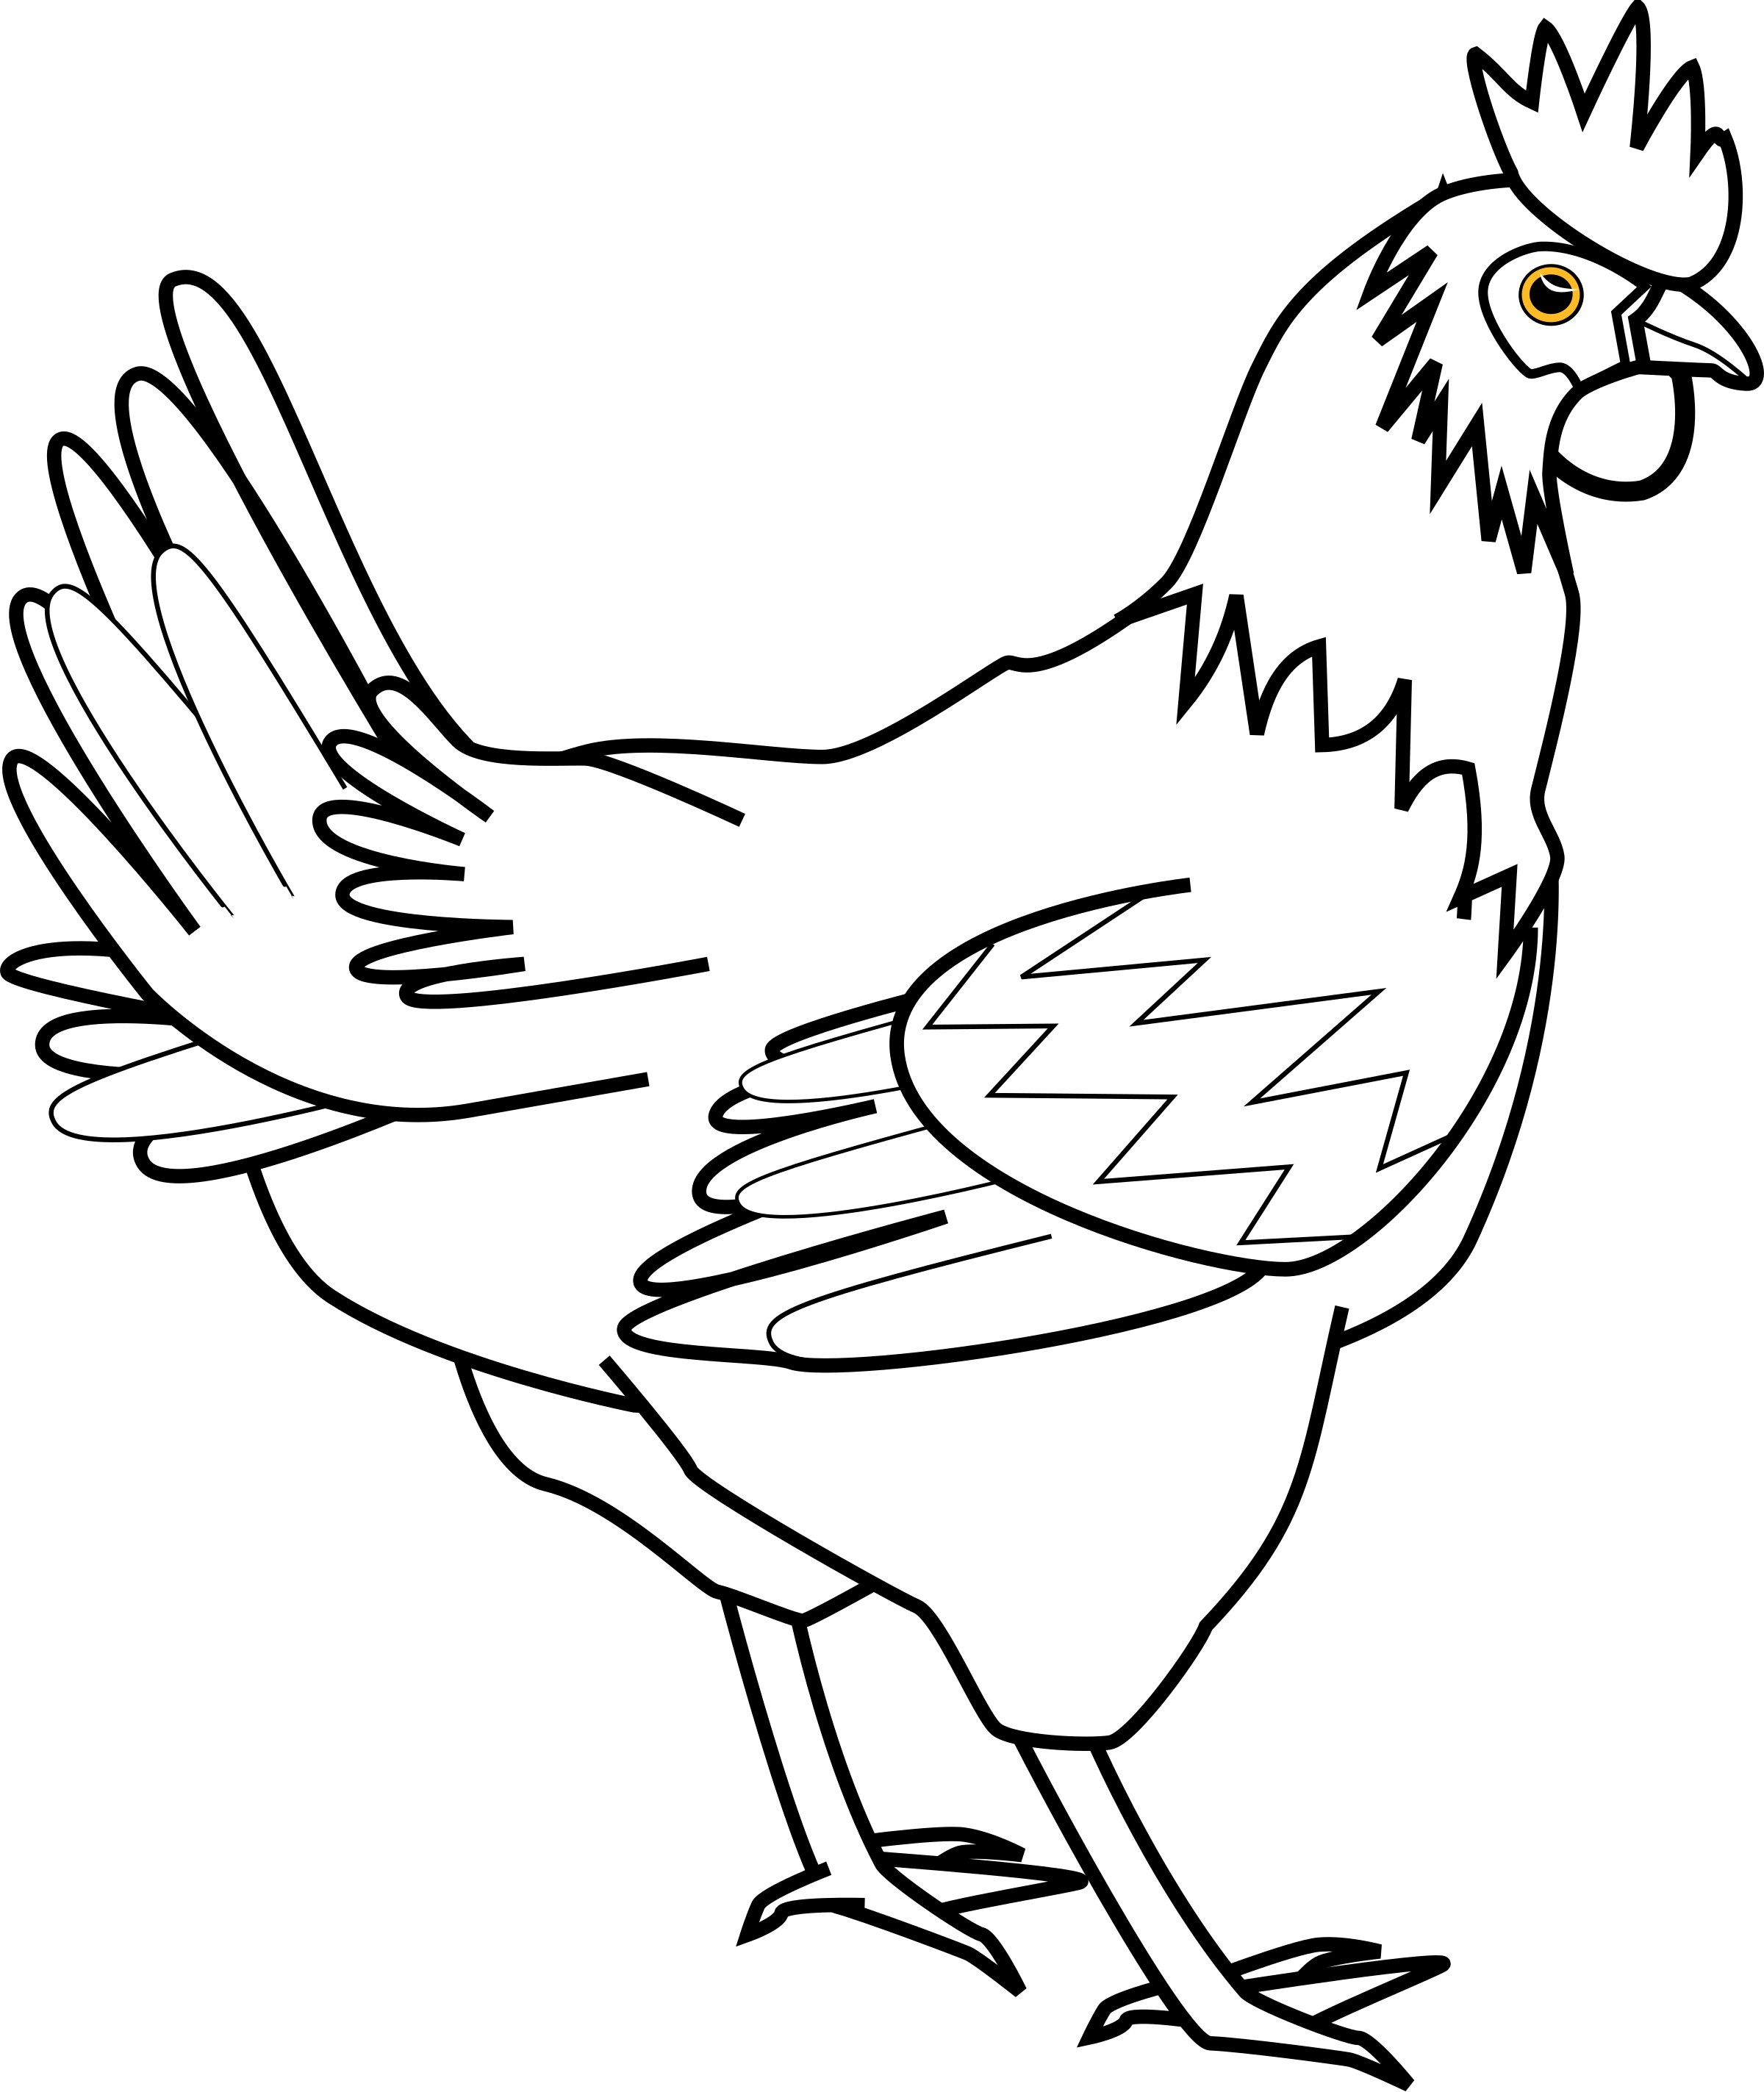 Line drawing at getdrawings. Animals clipart chicken